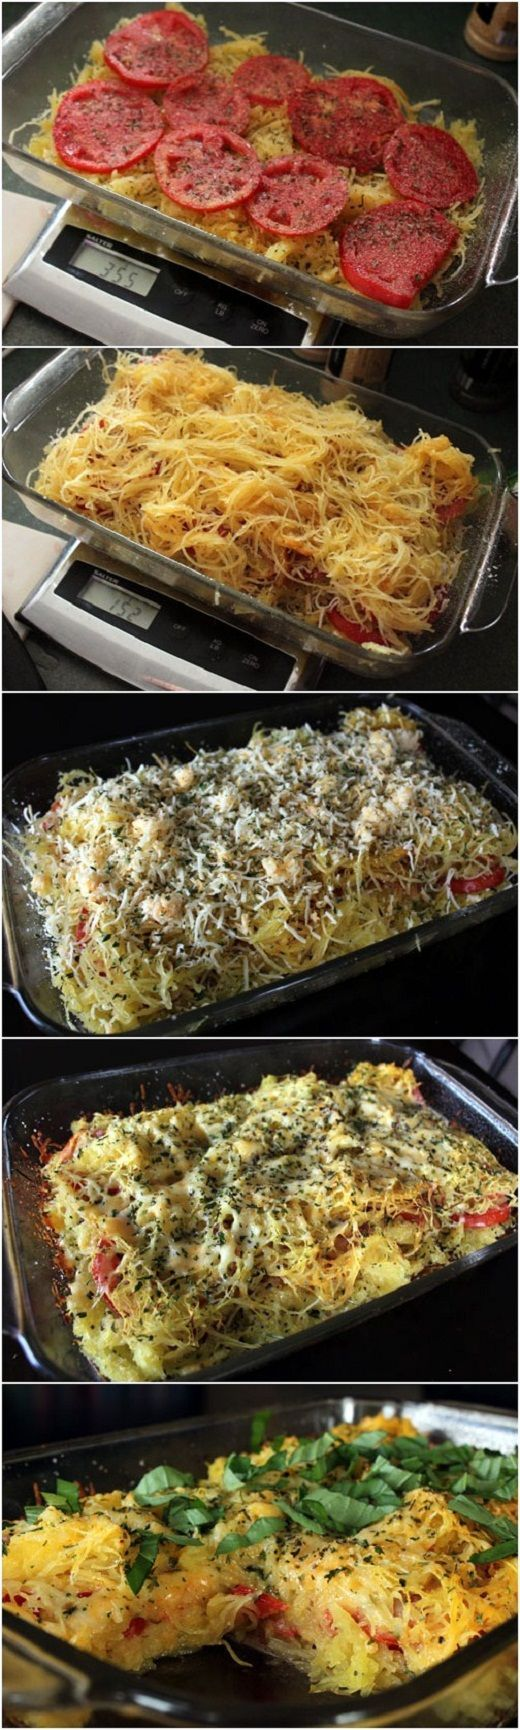 Tomato Basil Spaghetti Squash Bake Recipe : super healthy AND delicious!                                                                                                                                                                                 More